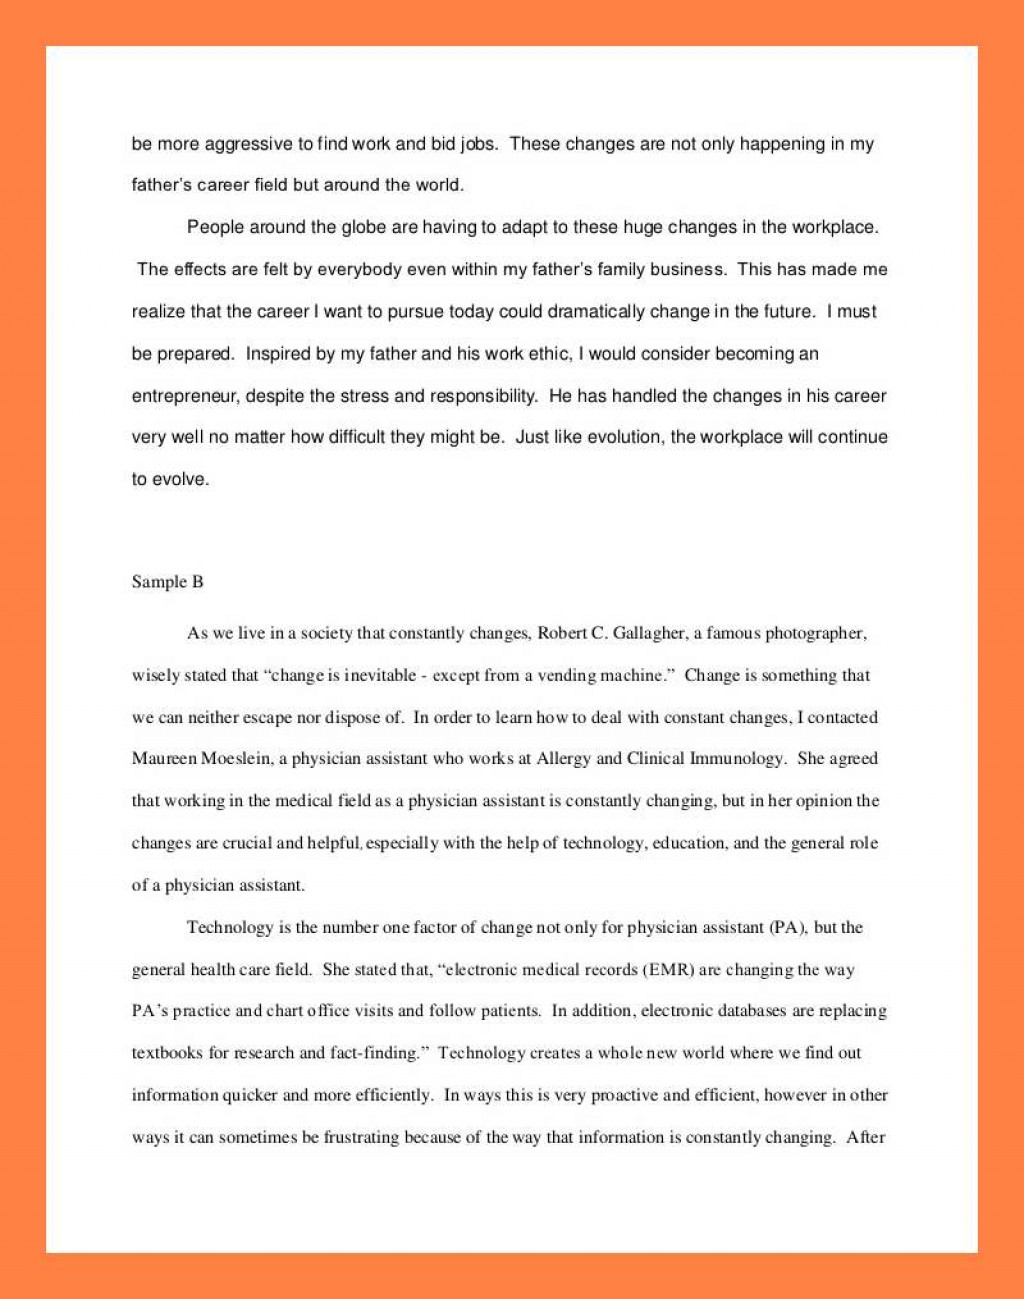 008 Interview Essays Of Student Reflections Staggering Essay Examples Manager Informational Sample Job Large